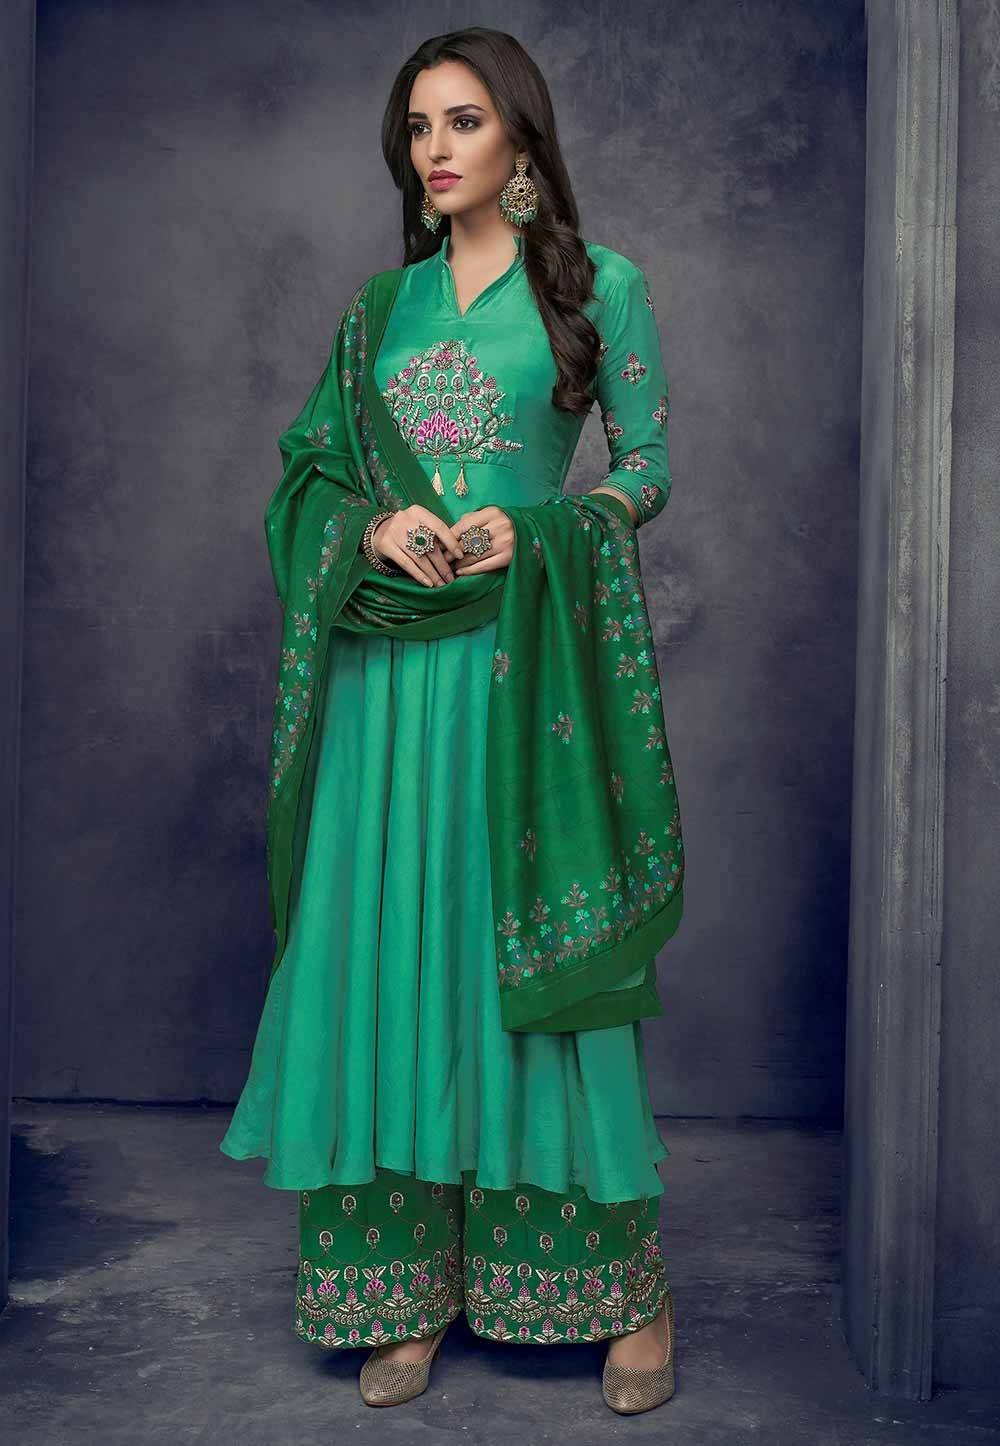 Green Colour Palazzo Party Wear Salwar Kameez